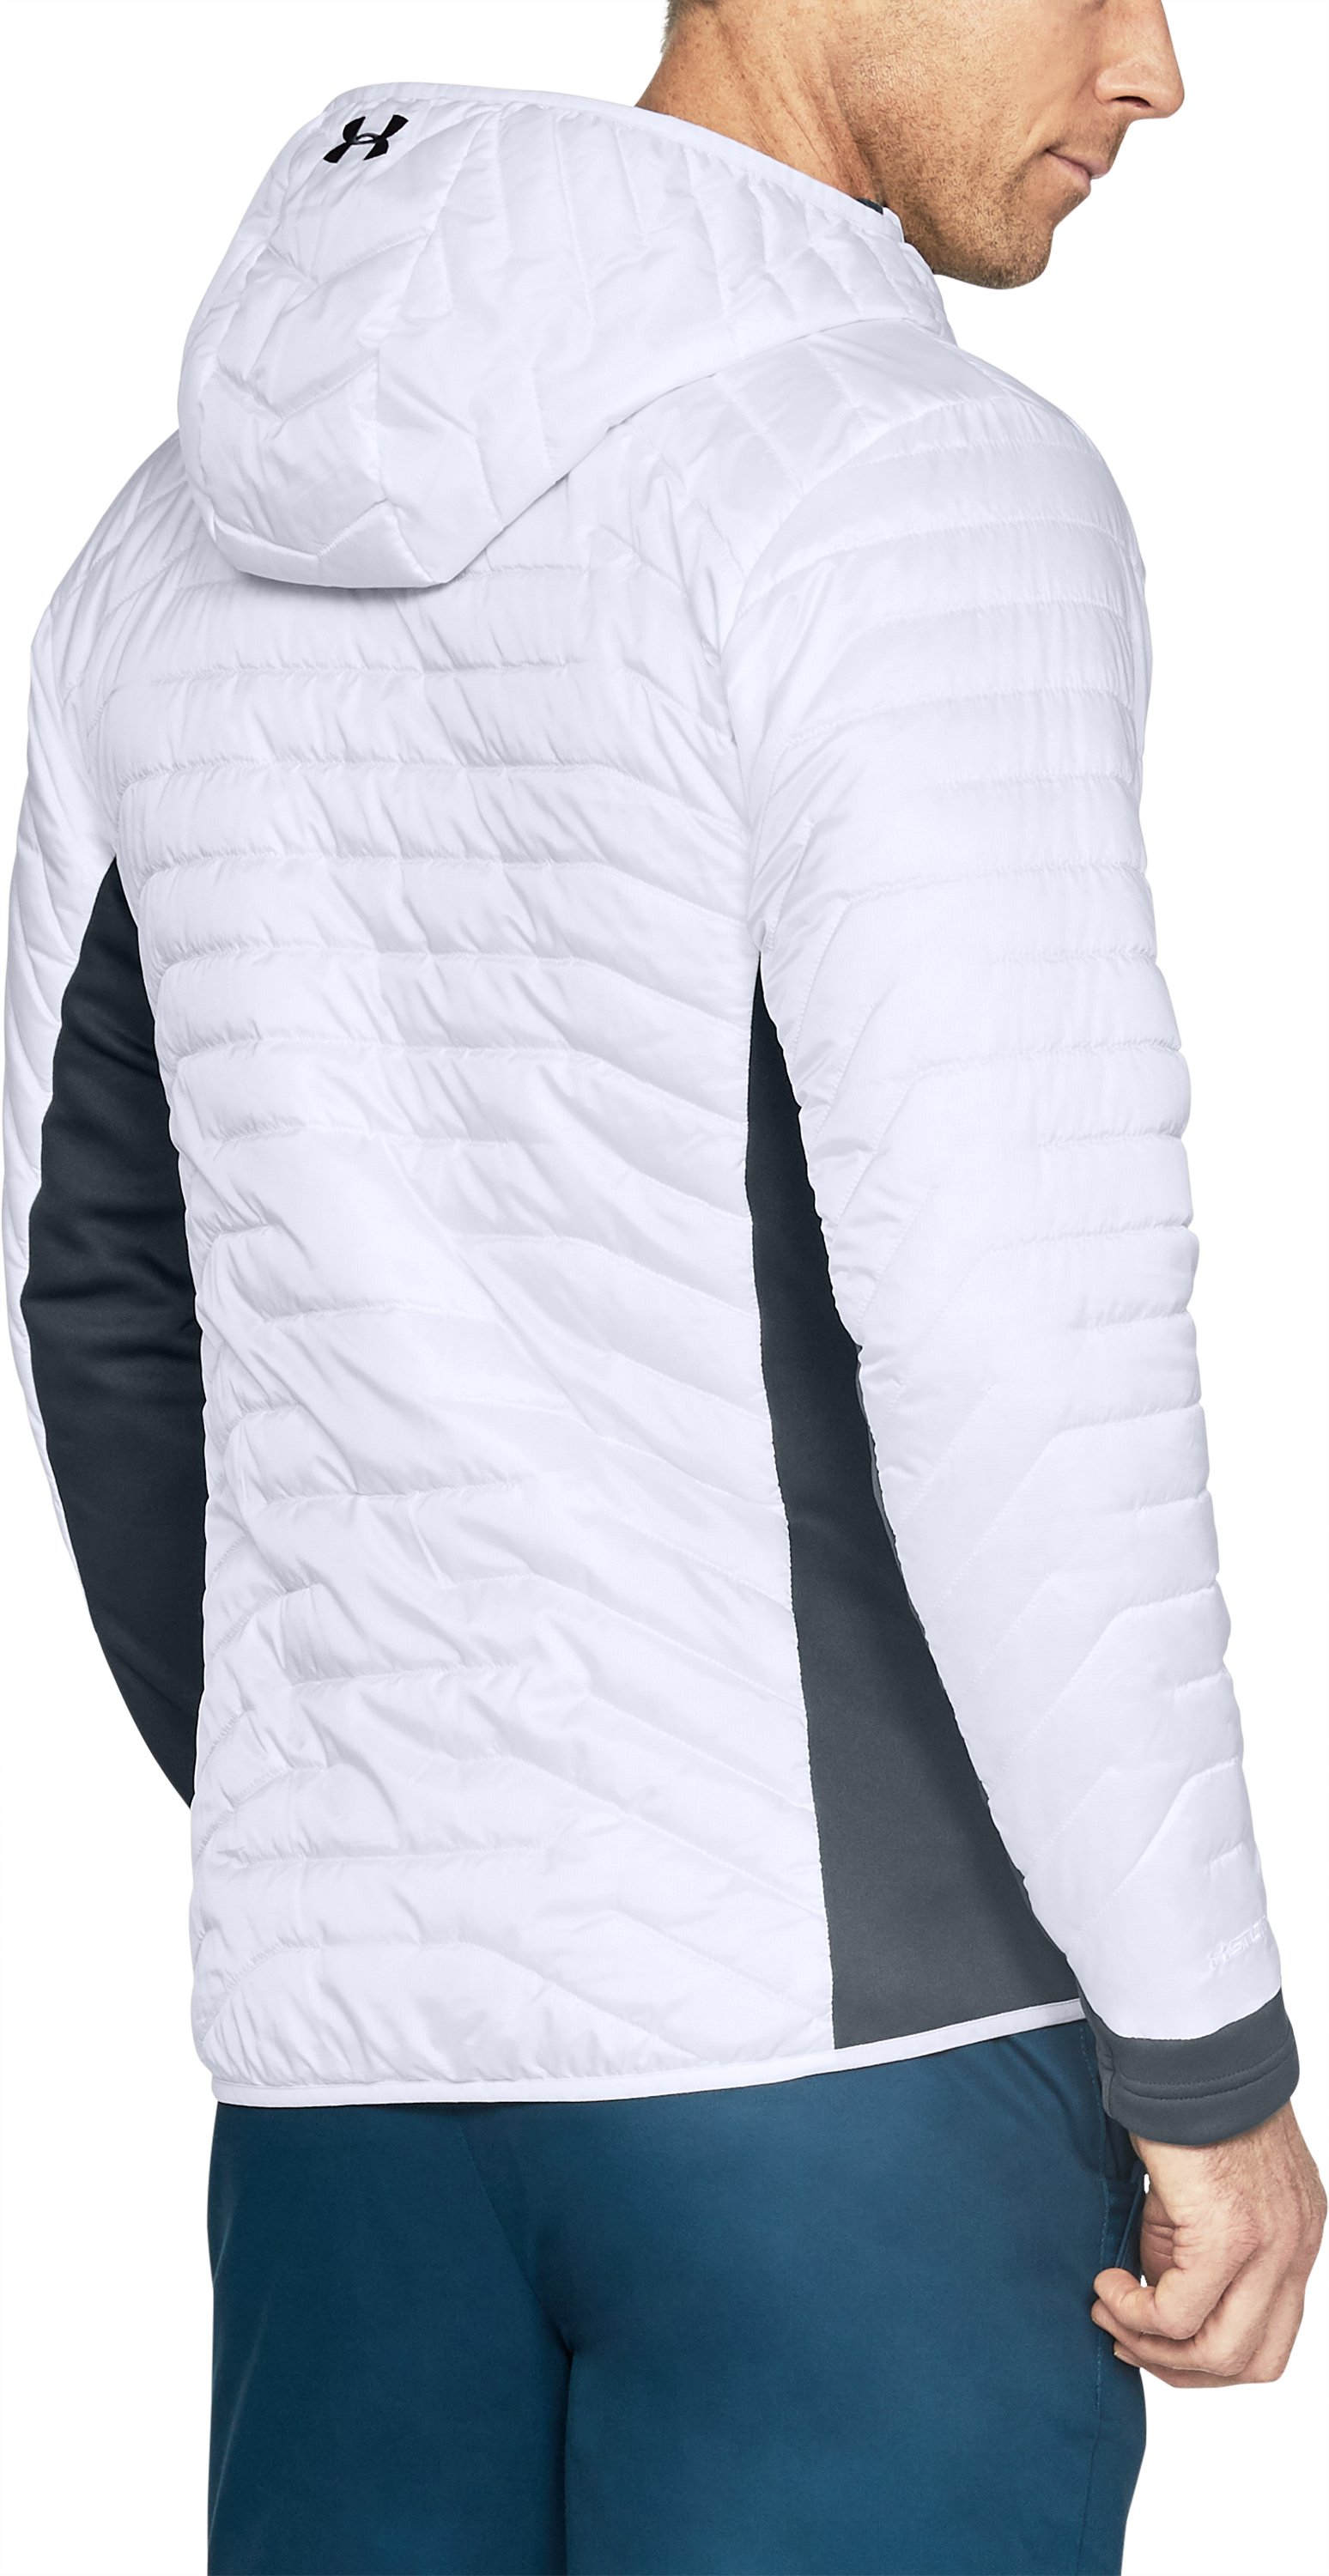 Men's ColdGear® Reactor Hybrid Jacket, White,